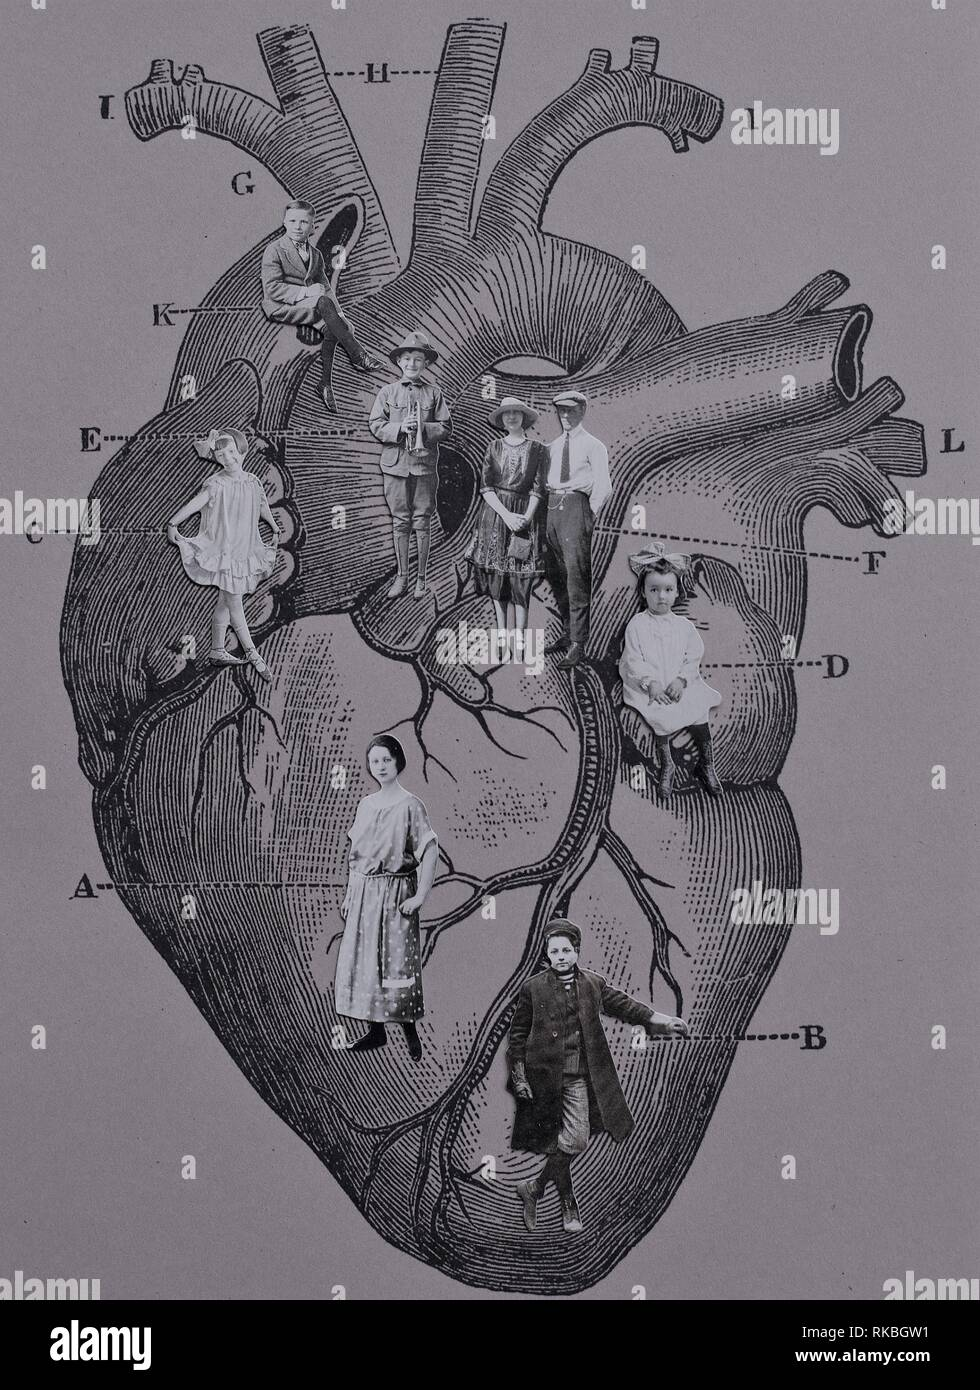 An anatomical heart with lines pointing to various people representing ancestors. - Stock Image